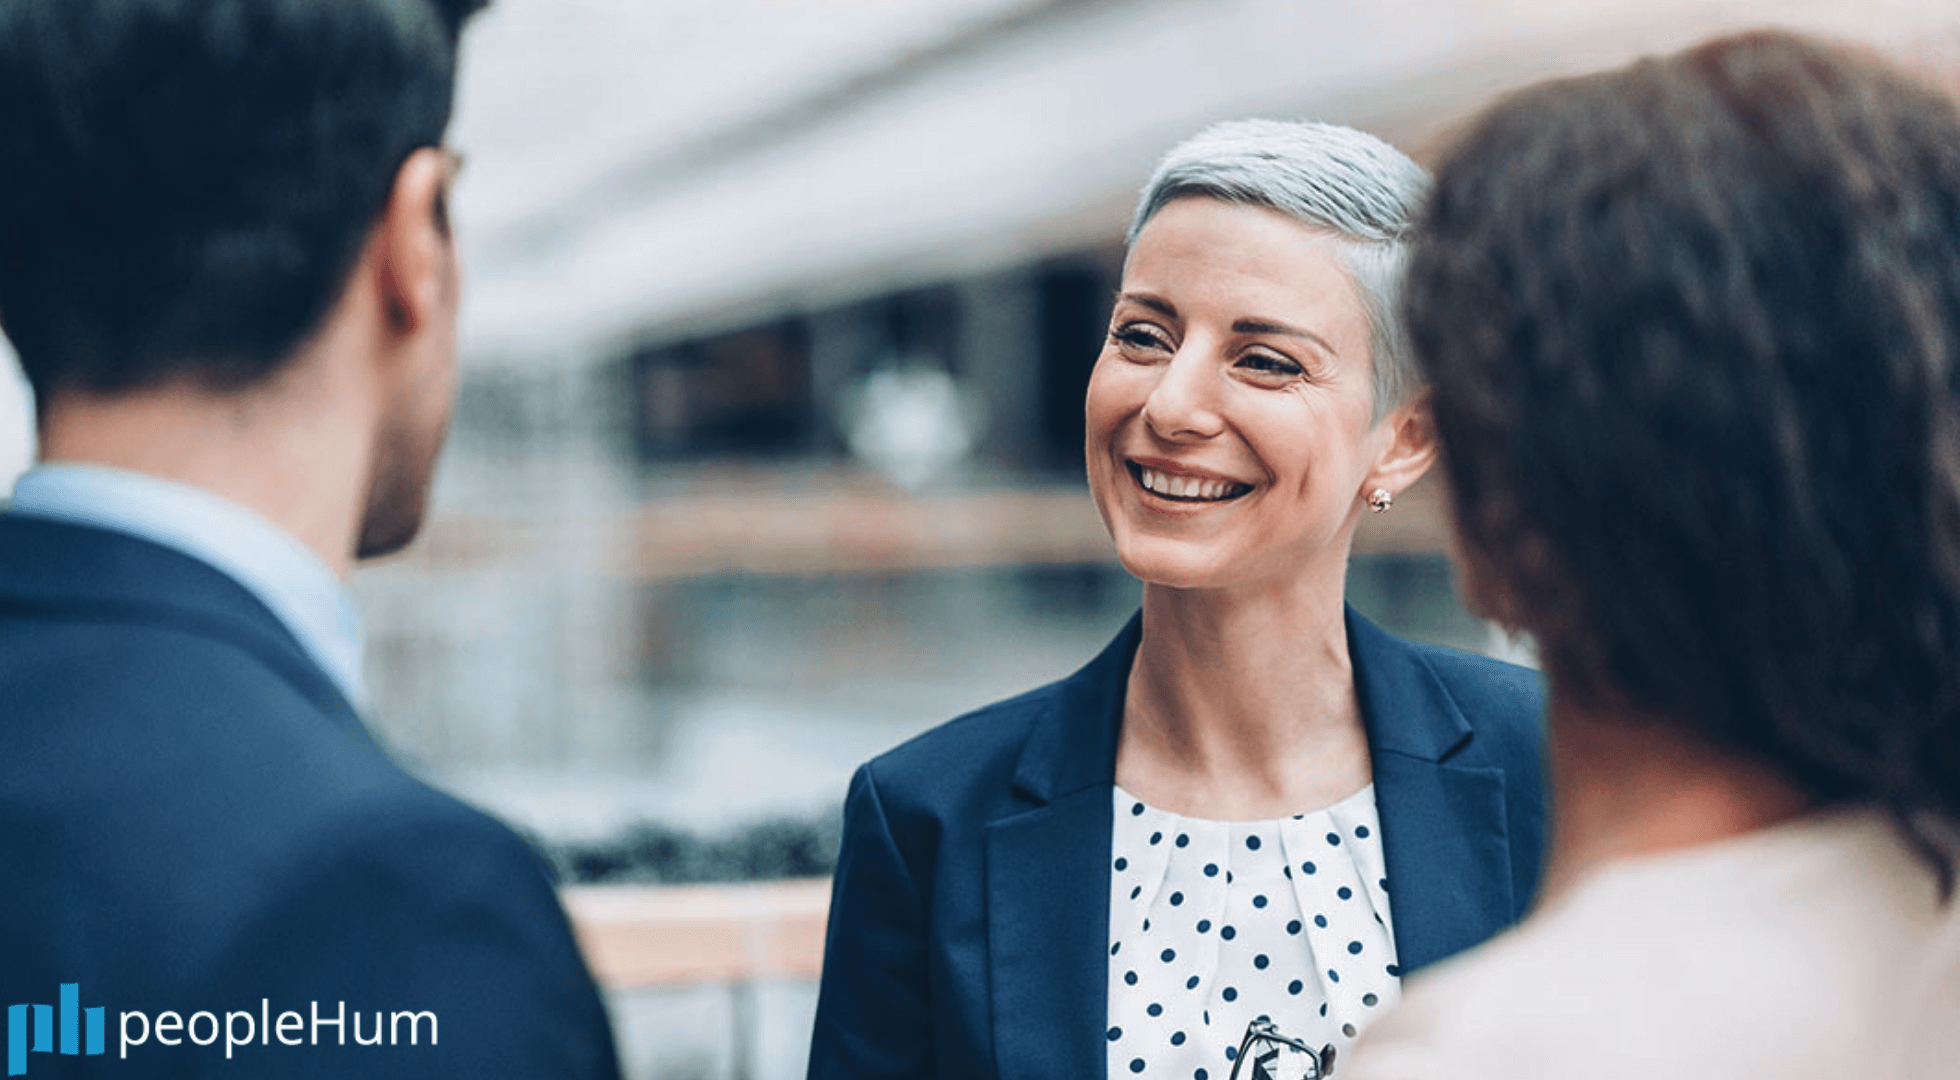 Top 5 qualities you should look for when appointing leaders